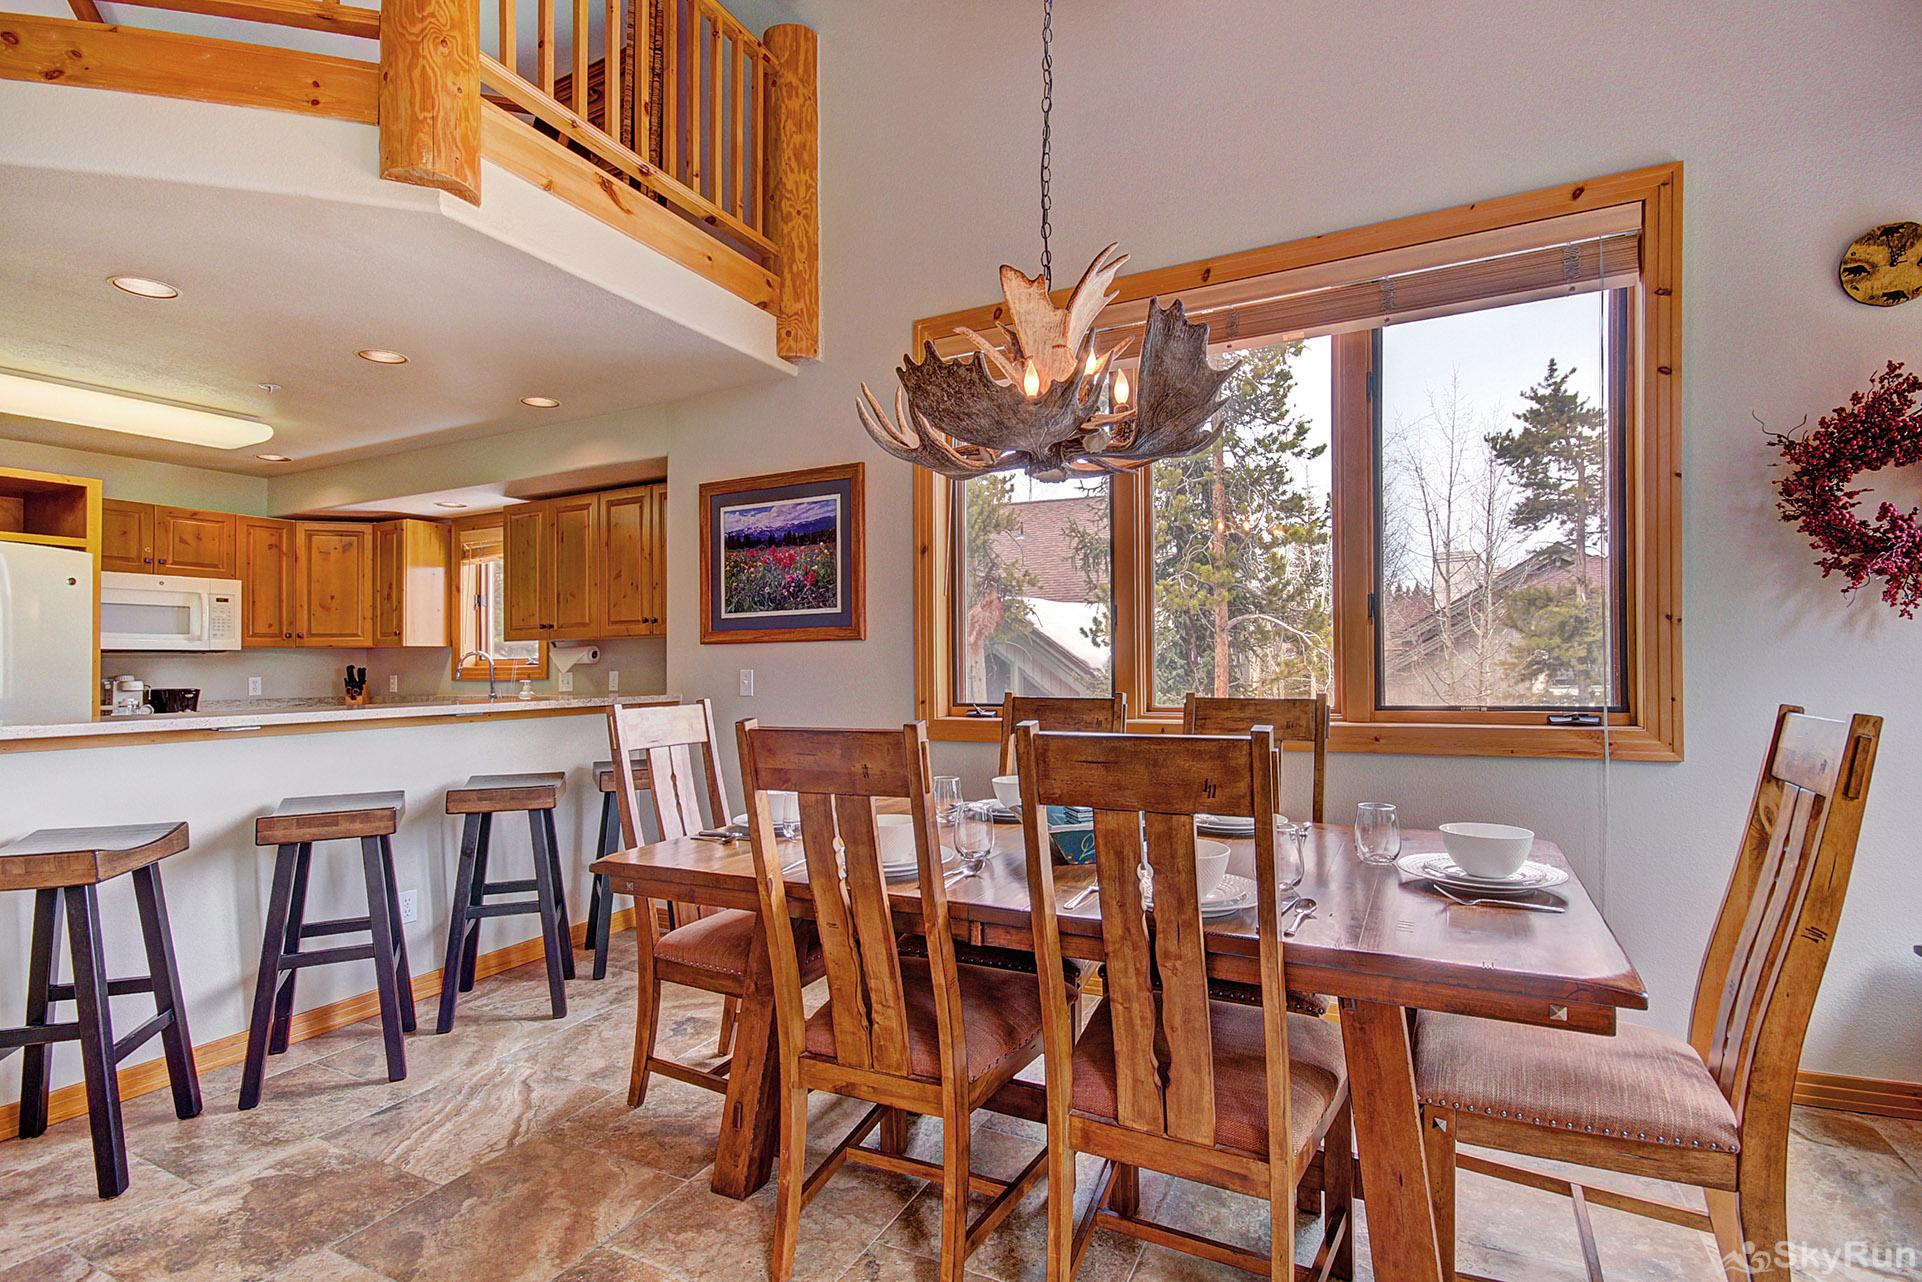 Elk Ridge Retreat Dining table with seating for 8-10, additional seating for 4 at the bar